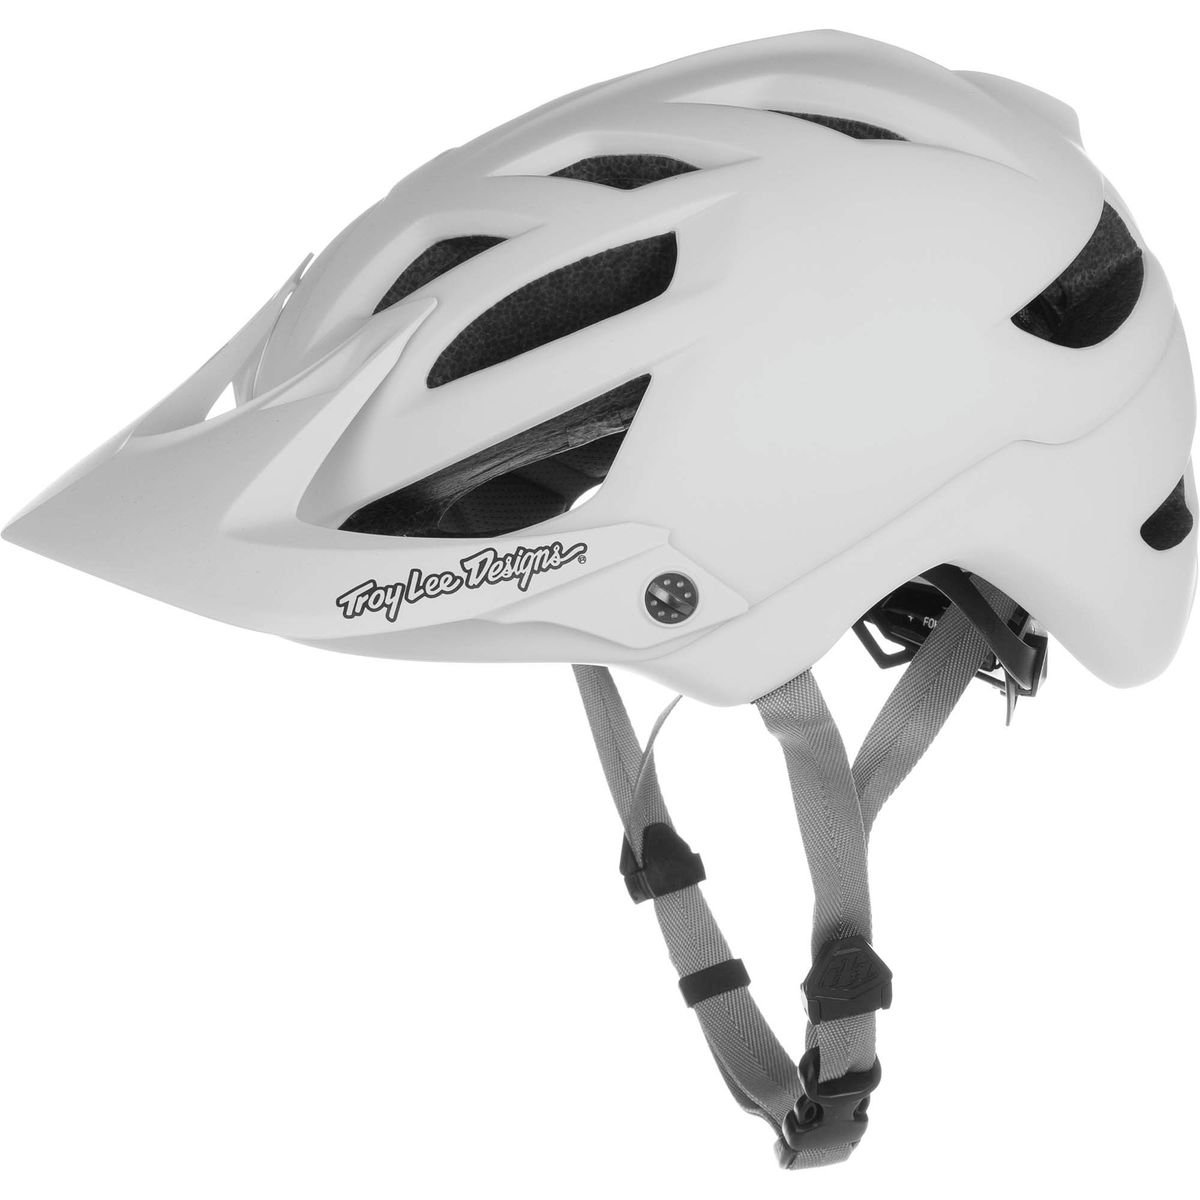 Troy Lee Designs A-1 Helmet Drone White/Grey, M/L by Troy Lee Designs (Image #1)